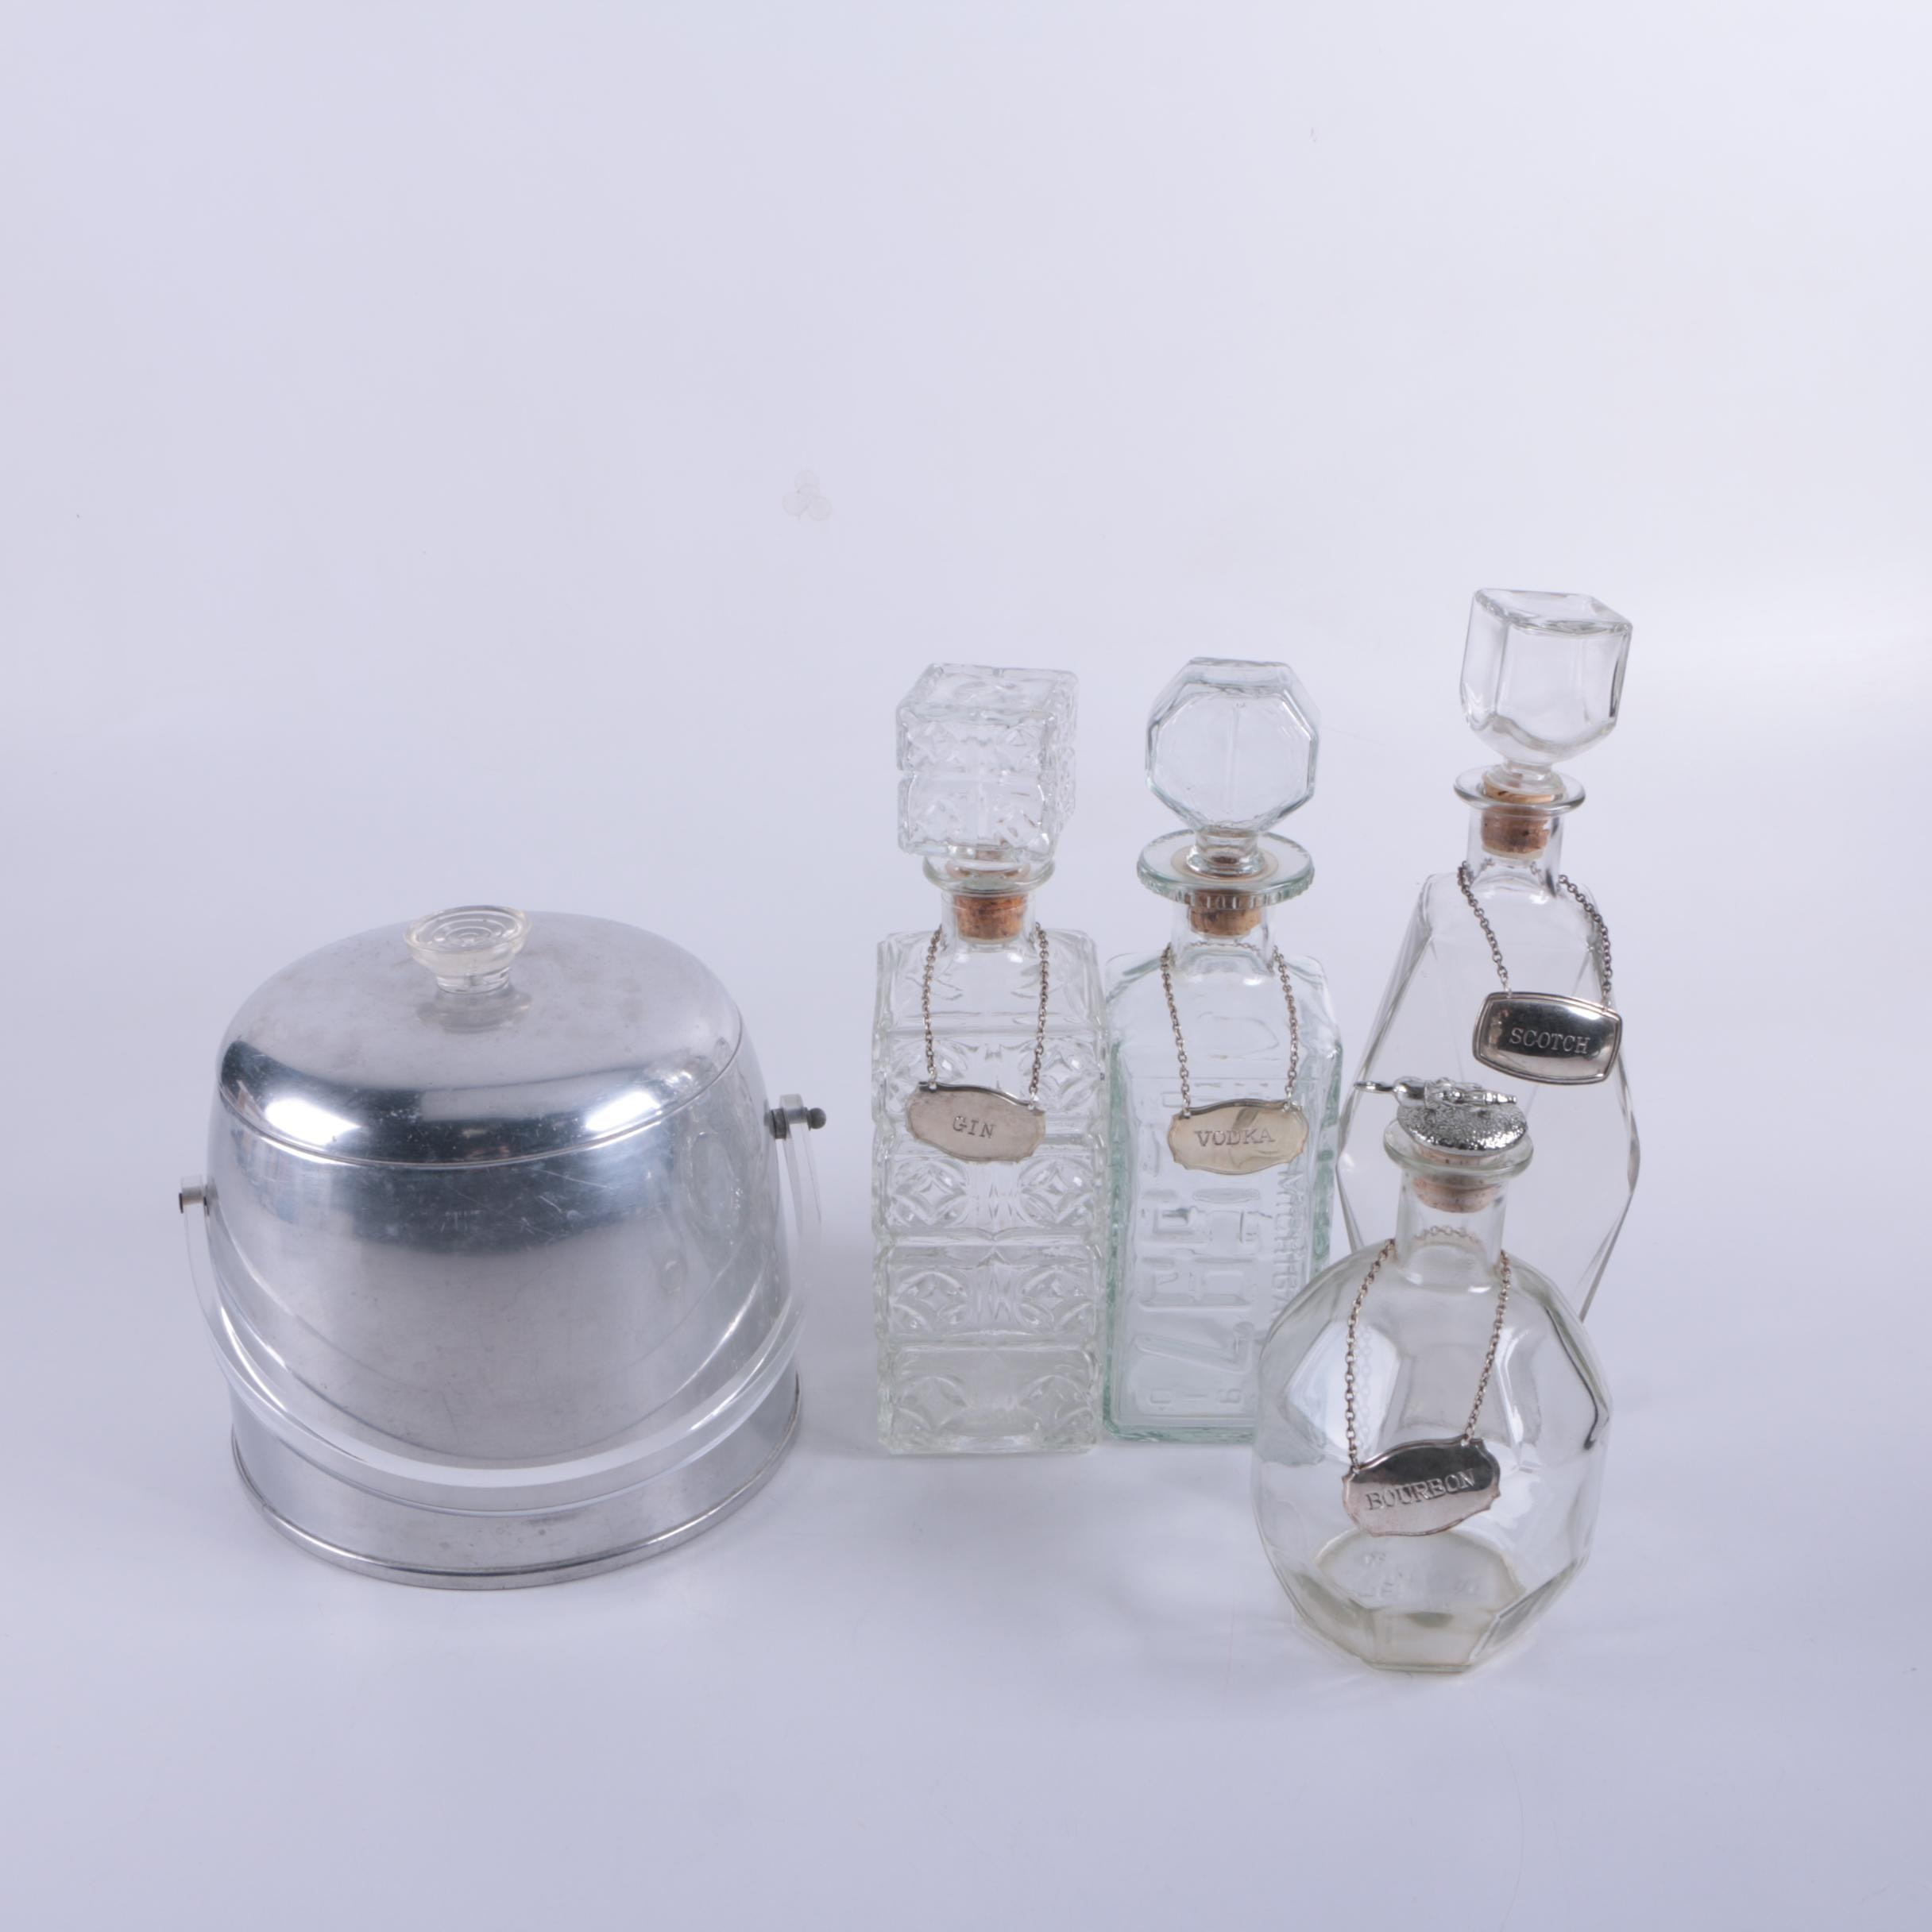 Glass Decanters and Metal Ice Bucket